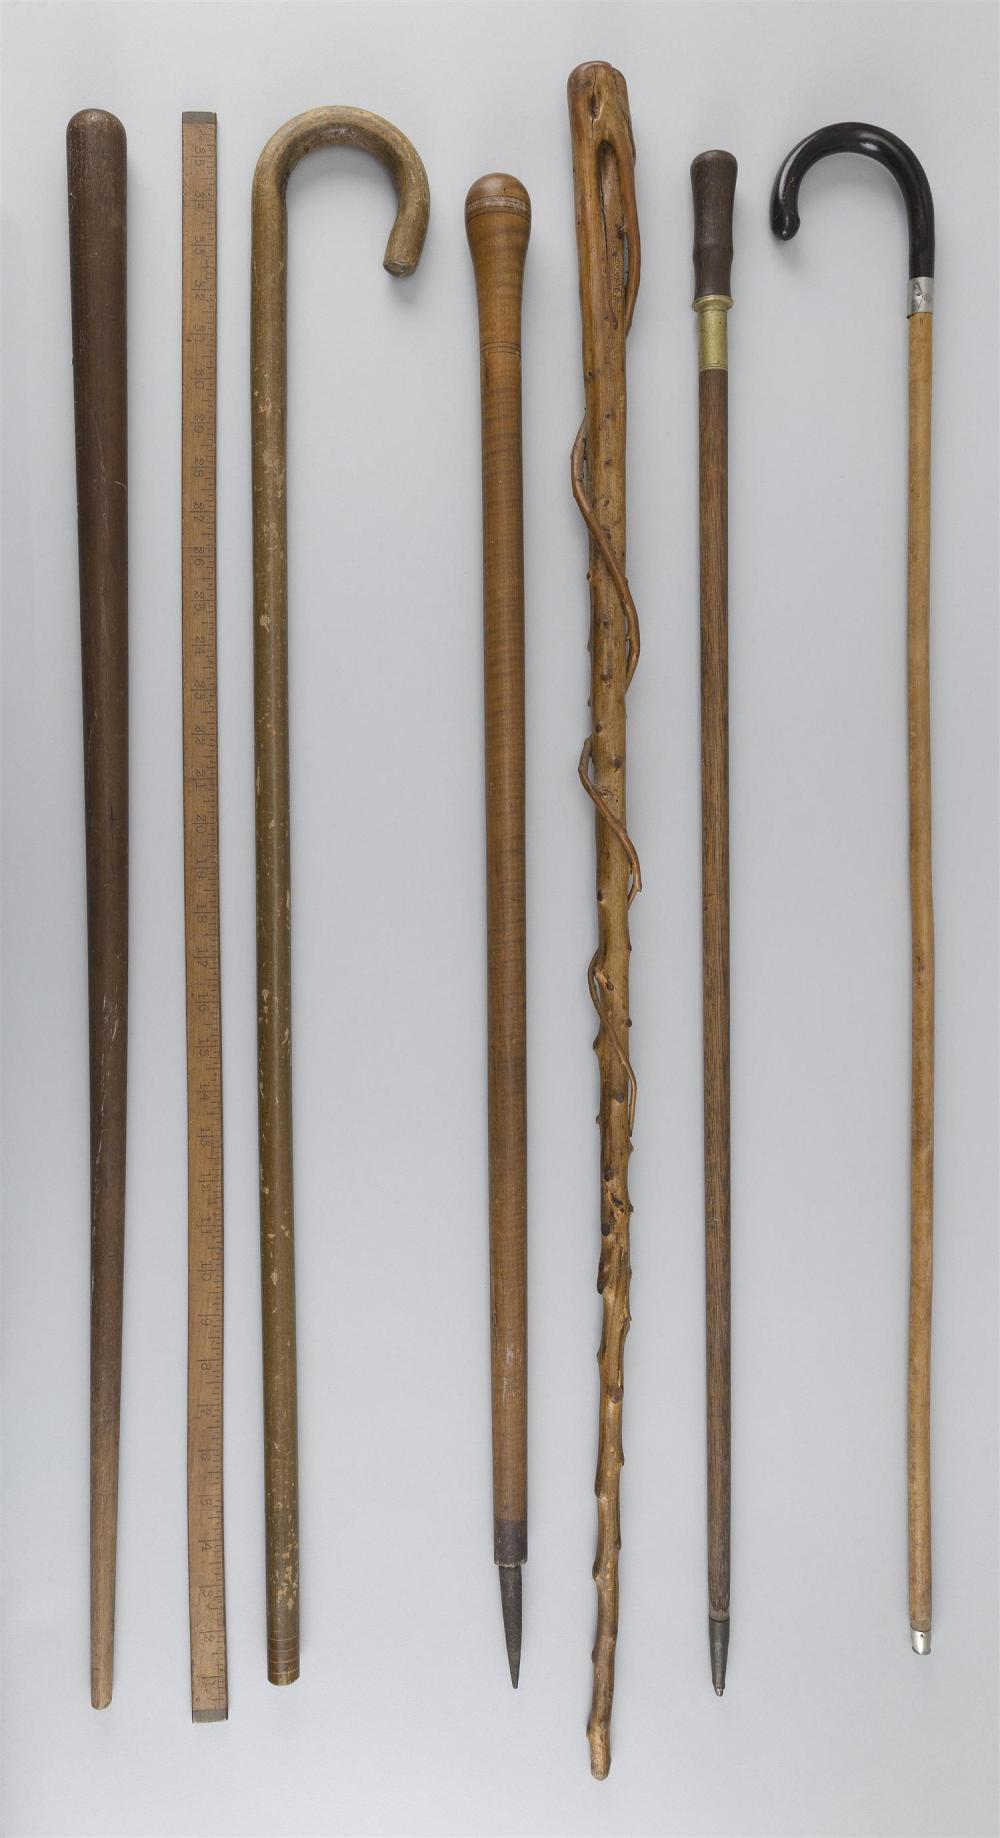 "SIX WOODEN CANES AND A YARDSTICK Lengths from 33.75"" to 39""."